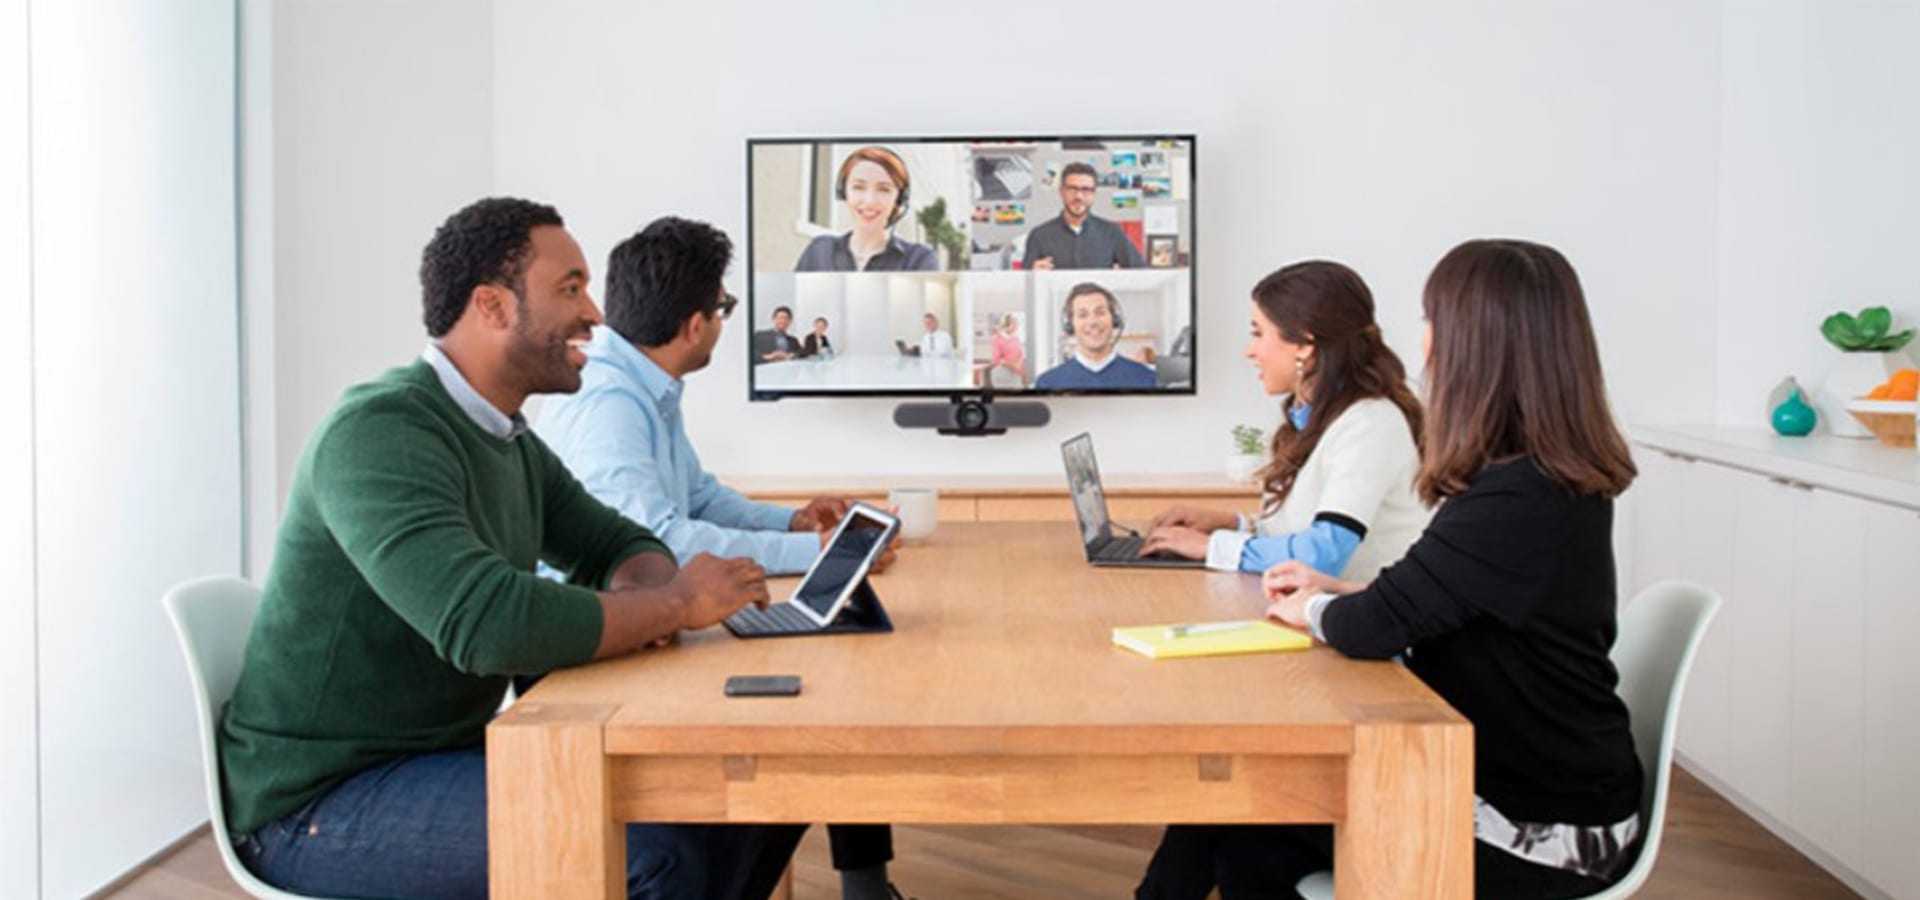 Audio and videoconferencing